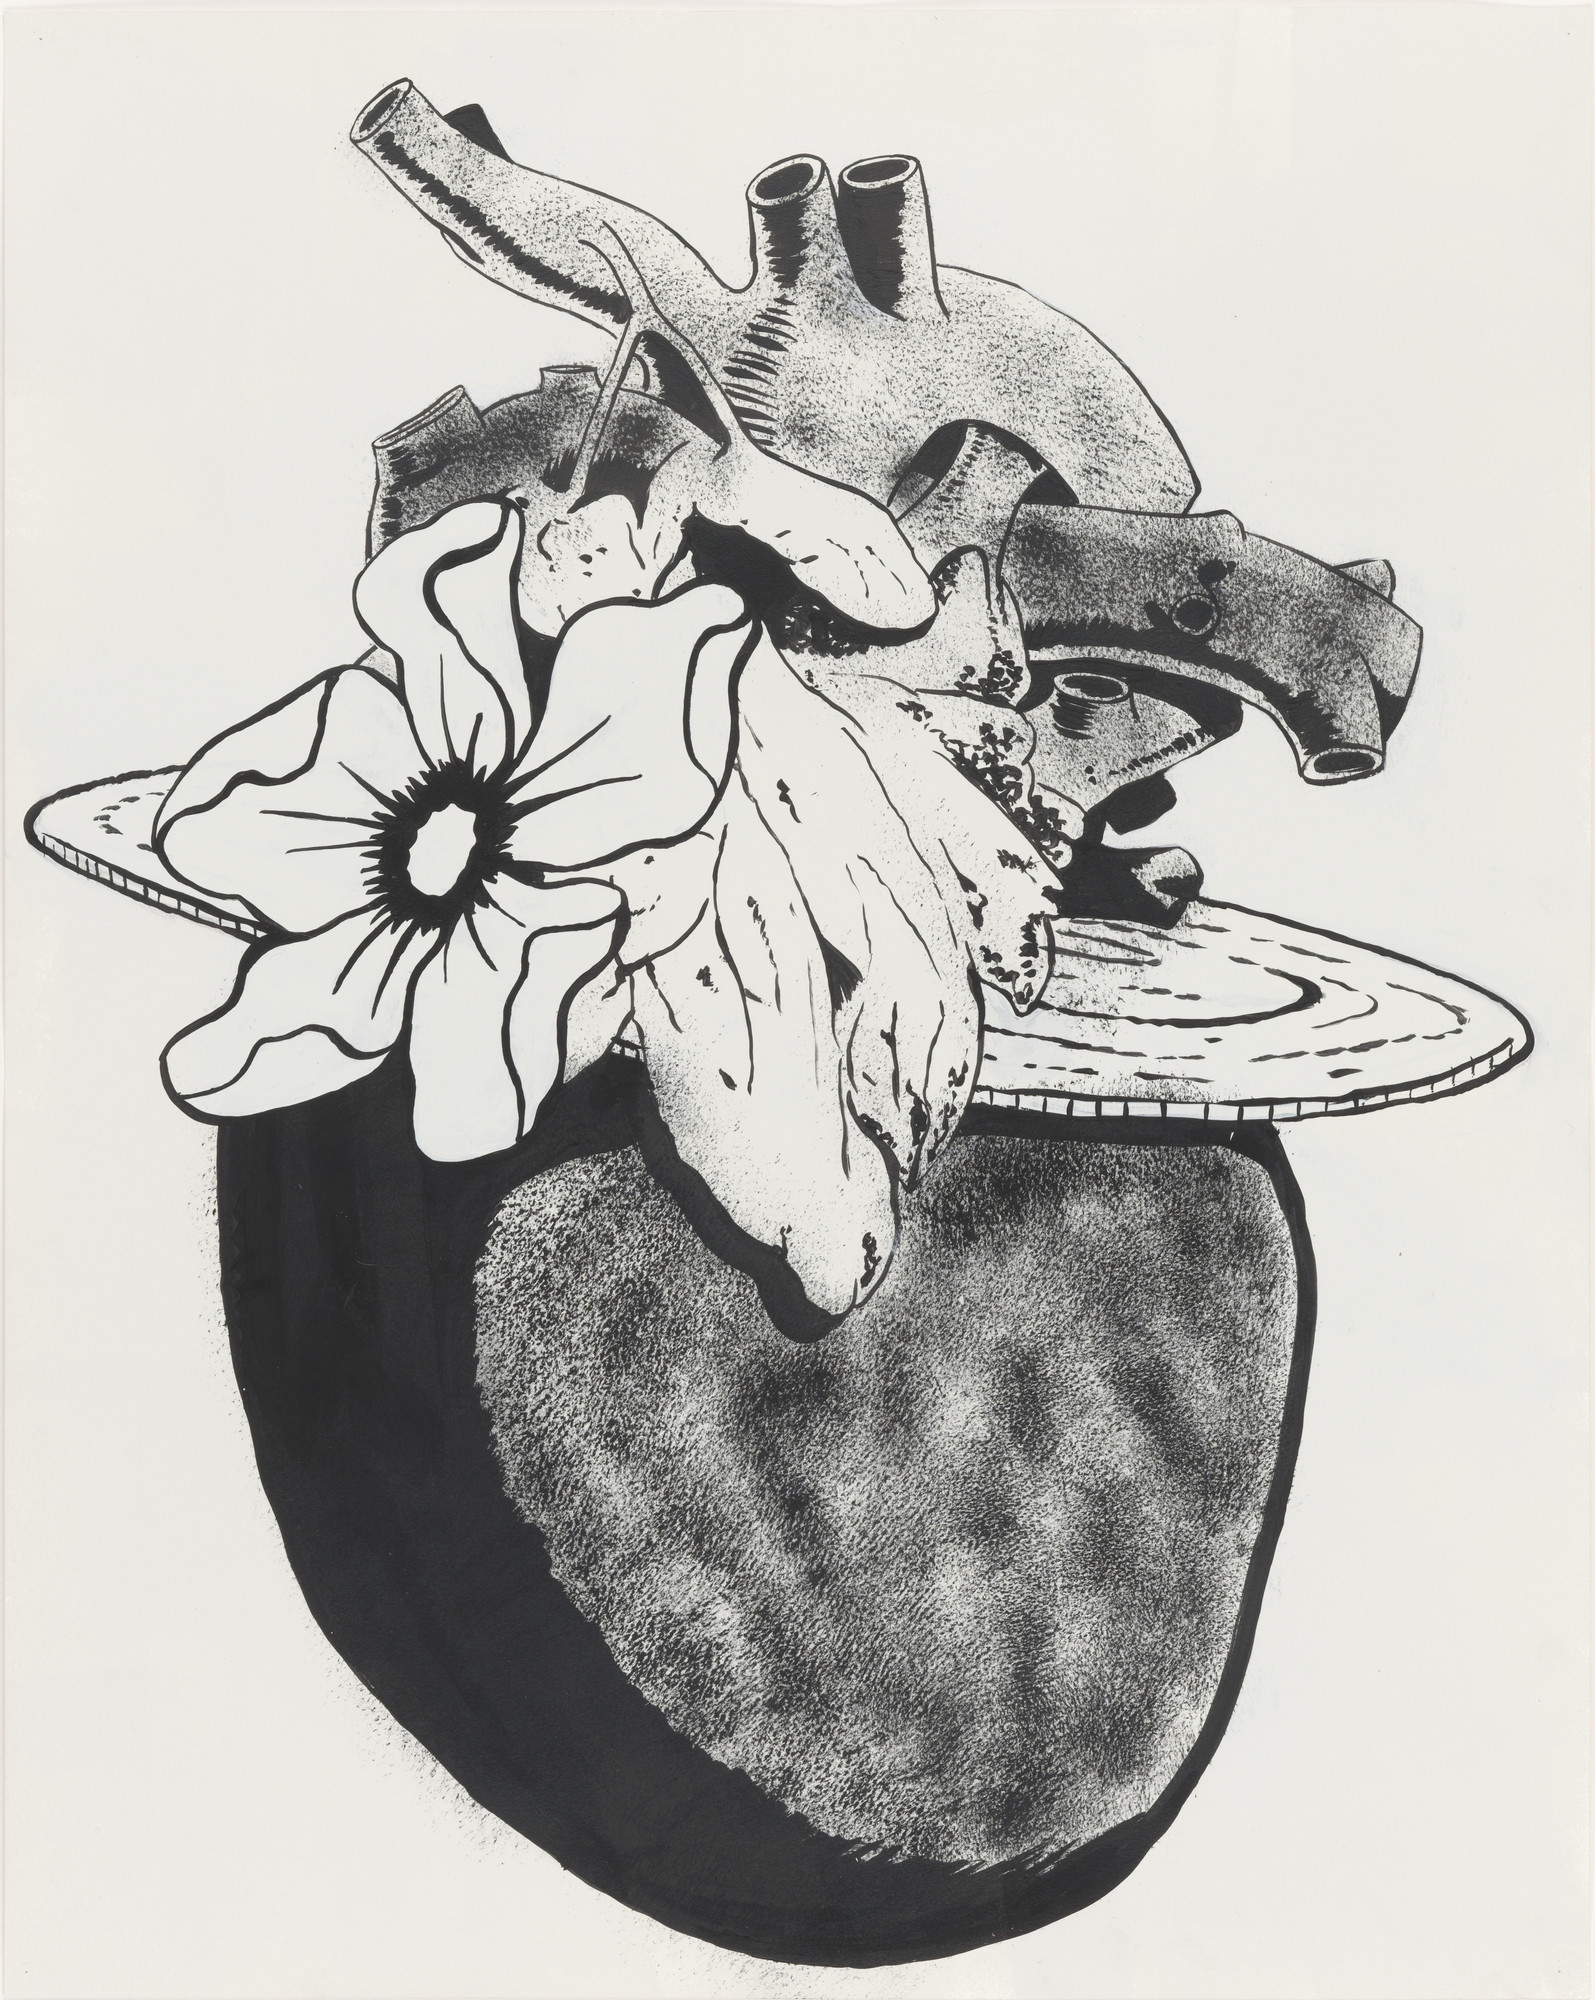 Mike Kelley. Heart with Fancy Hat. 1989